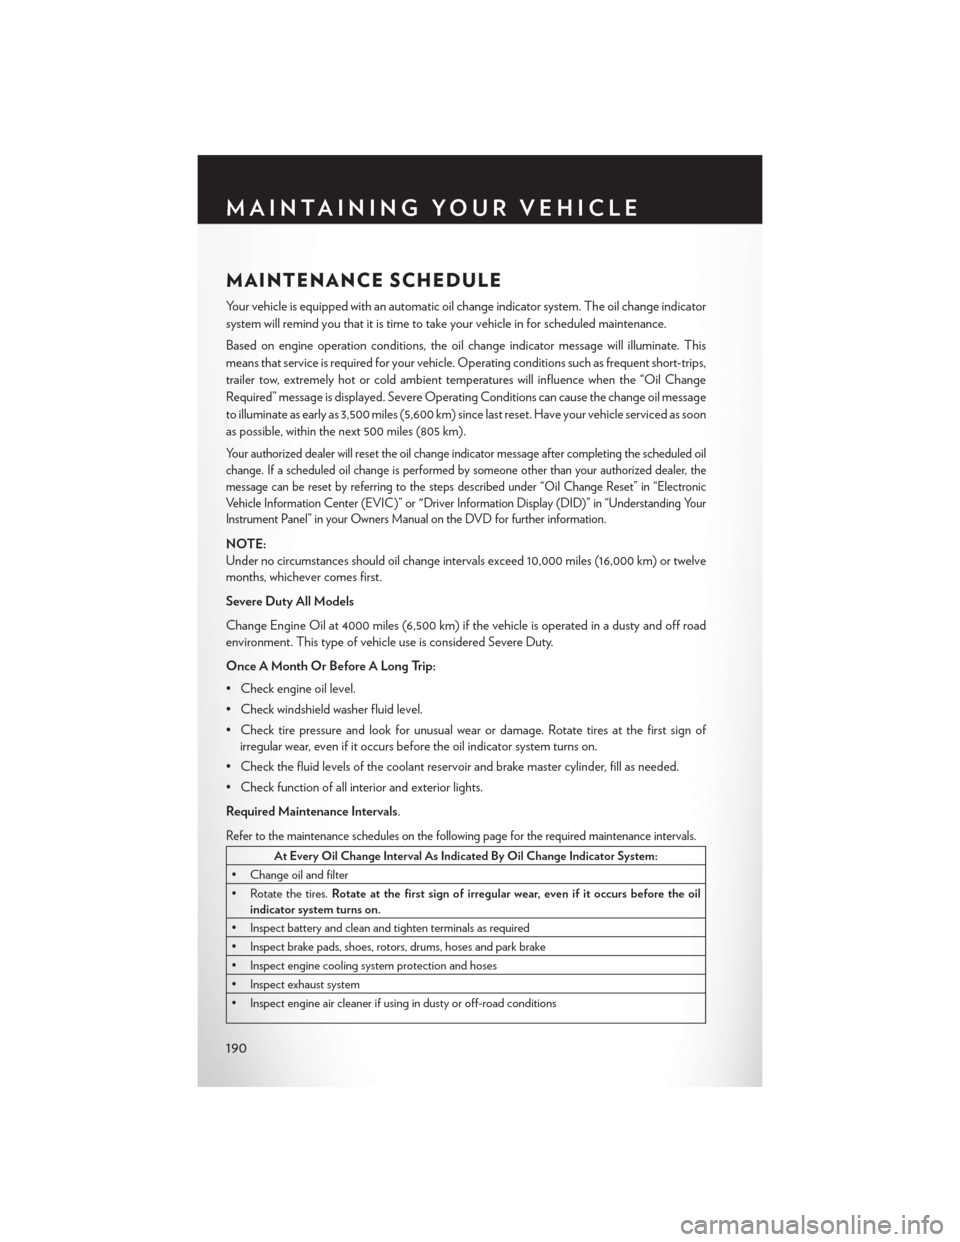 CHRYSLER 200 2015 2.G User Guide MAINTENANCE SCHEDULE Your vehicle is equipped with an automatic oil change indicator system. The oil change indicator system will remind you that it is time to take your vehicle in for scheduled maint